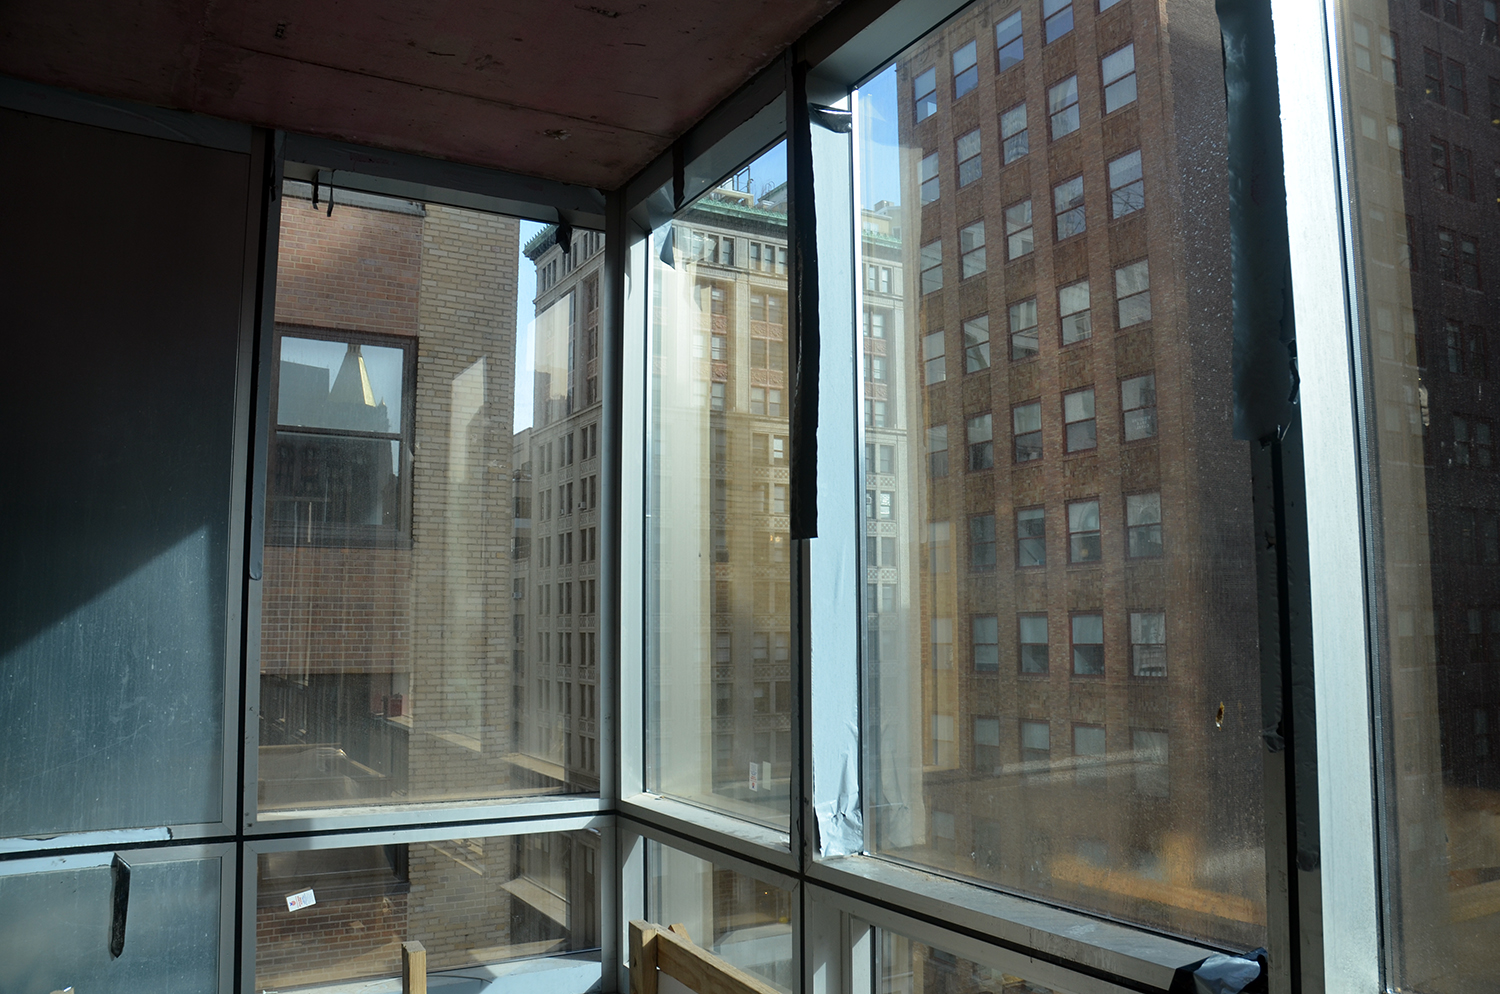 172 Madison Avenue, 8th floor, northeast corner.